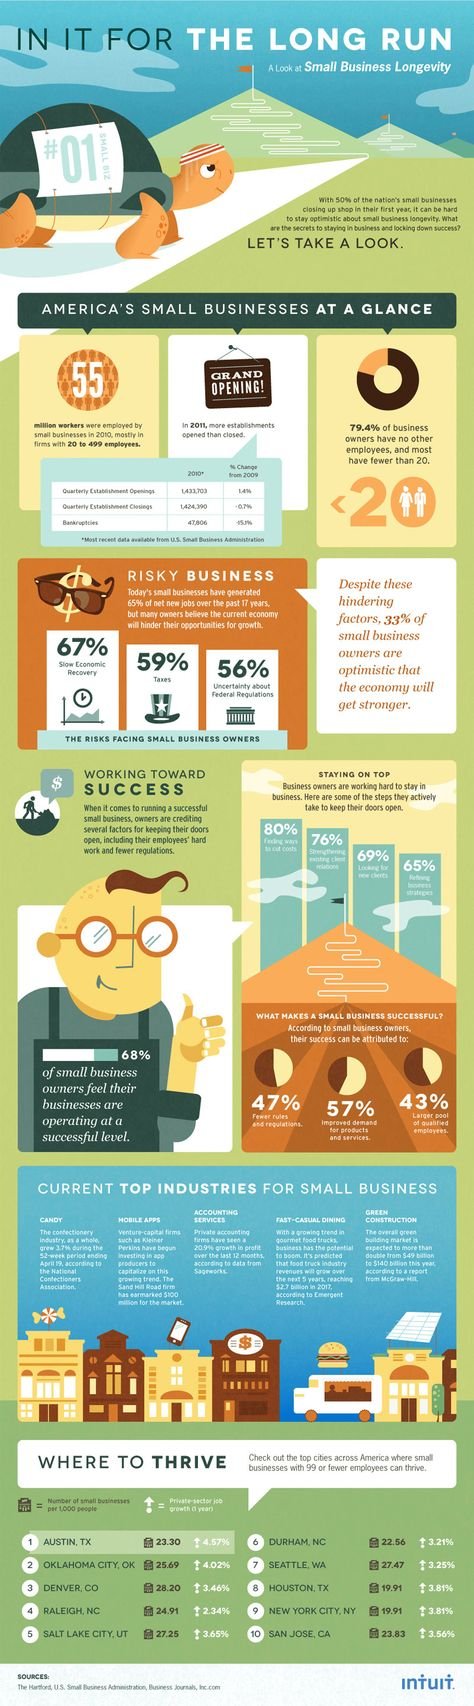 Inside Small-Business Growth: Top Industries and Other Success Secrets (Infographic)